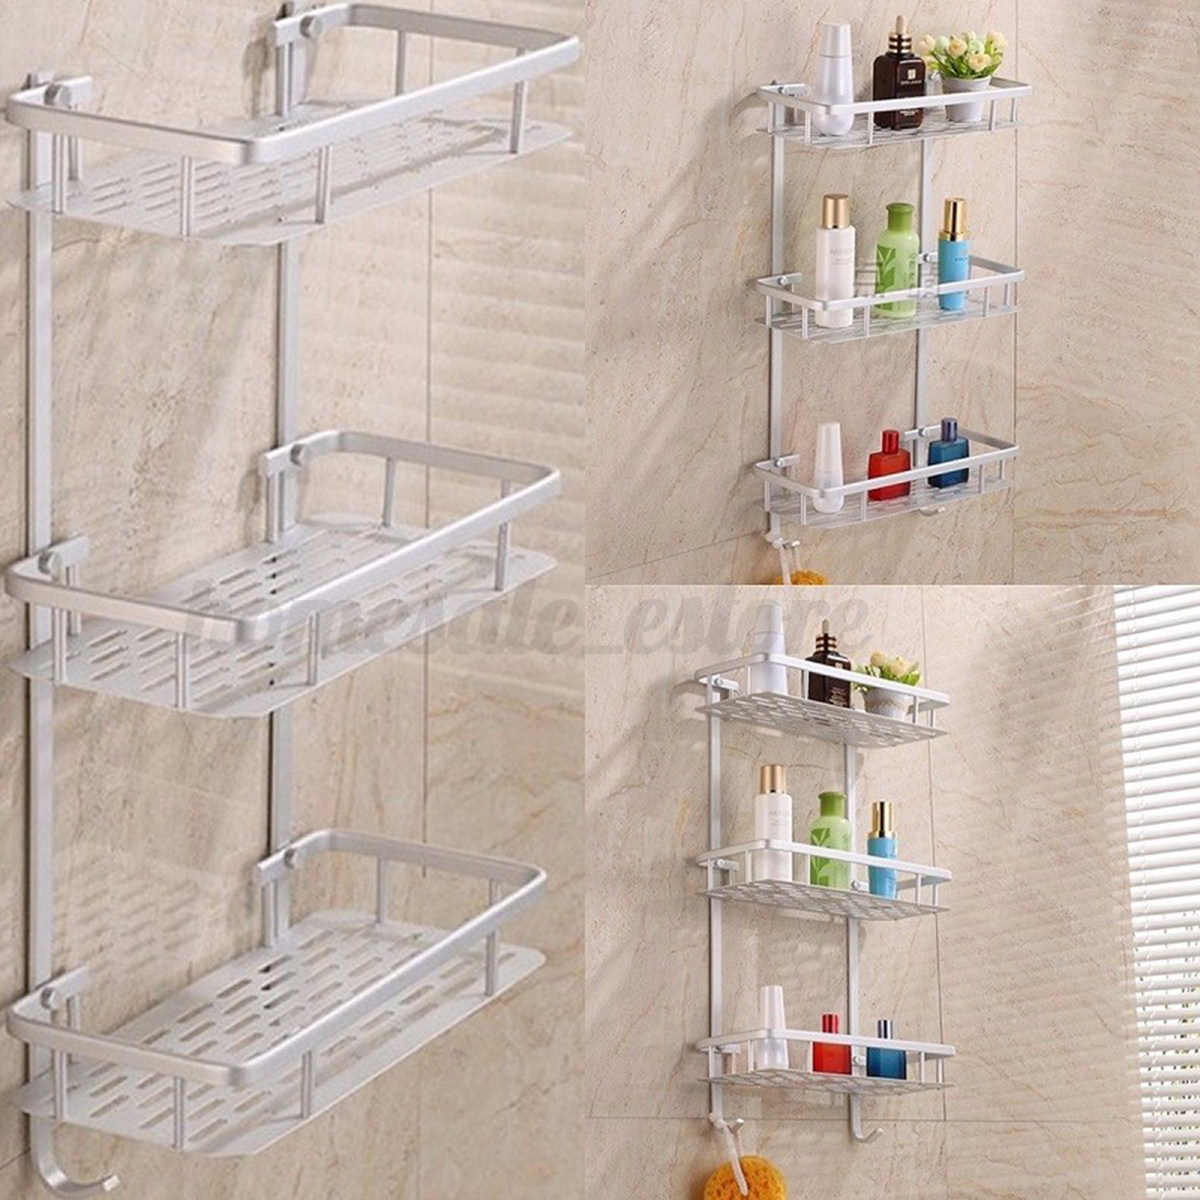 Bathroom Shower Storage Caddy - Thedancingparent.com